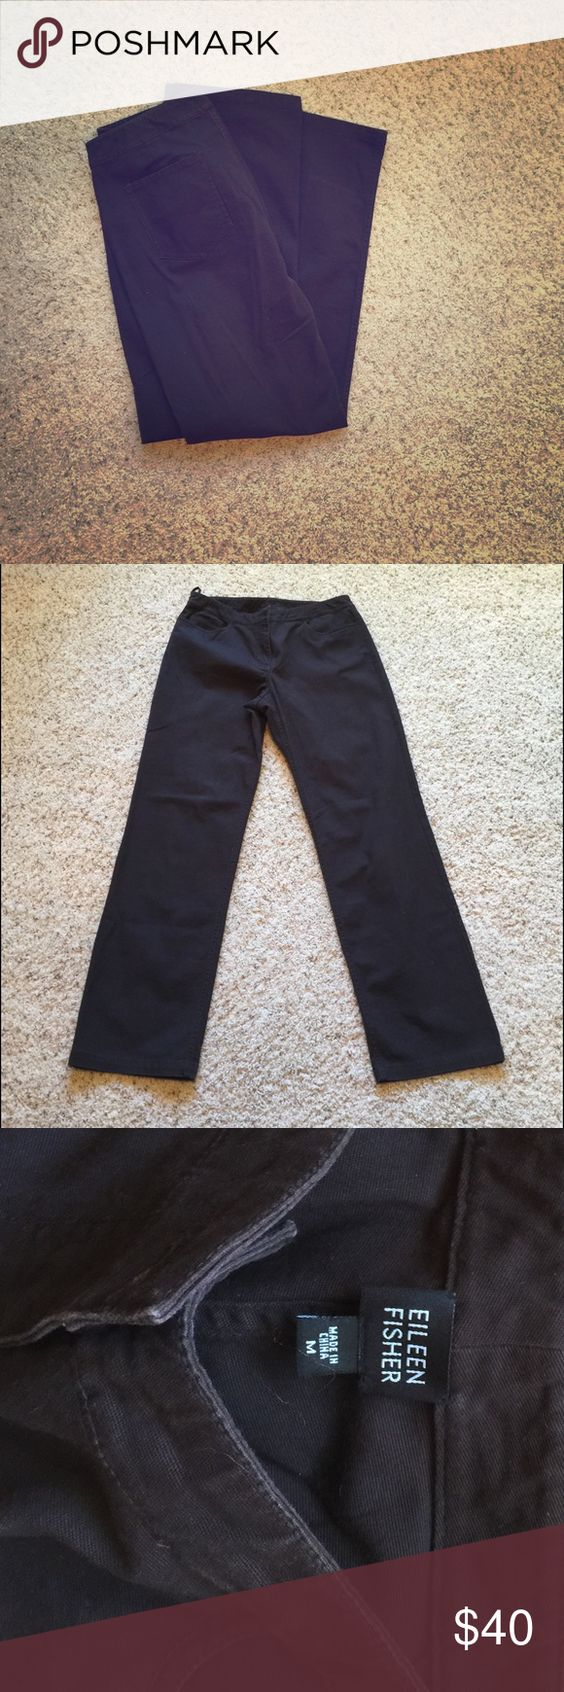 Eileen Fisher Cotton jean-style pants EUC Eileen Fisher pants in a straight leg jeans style. Flat front with pockets on the back. Dark chocolate brown. Cotton with a hint of stretch. Eileen Fisher Pants